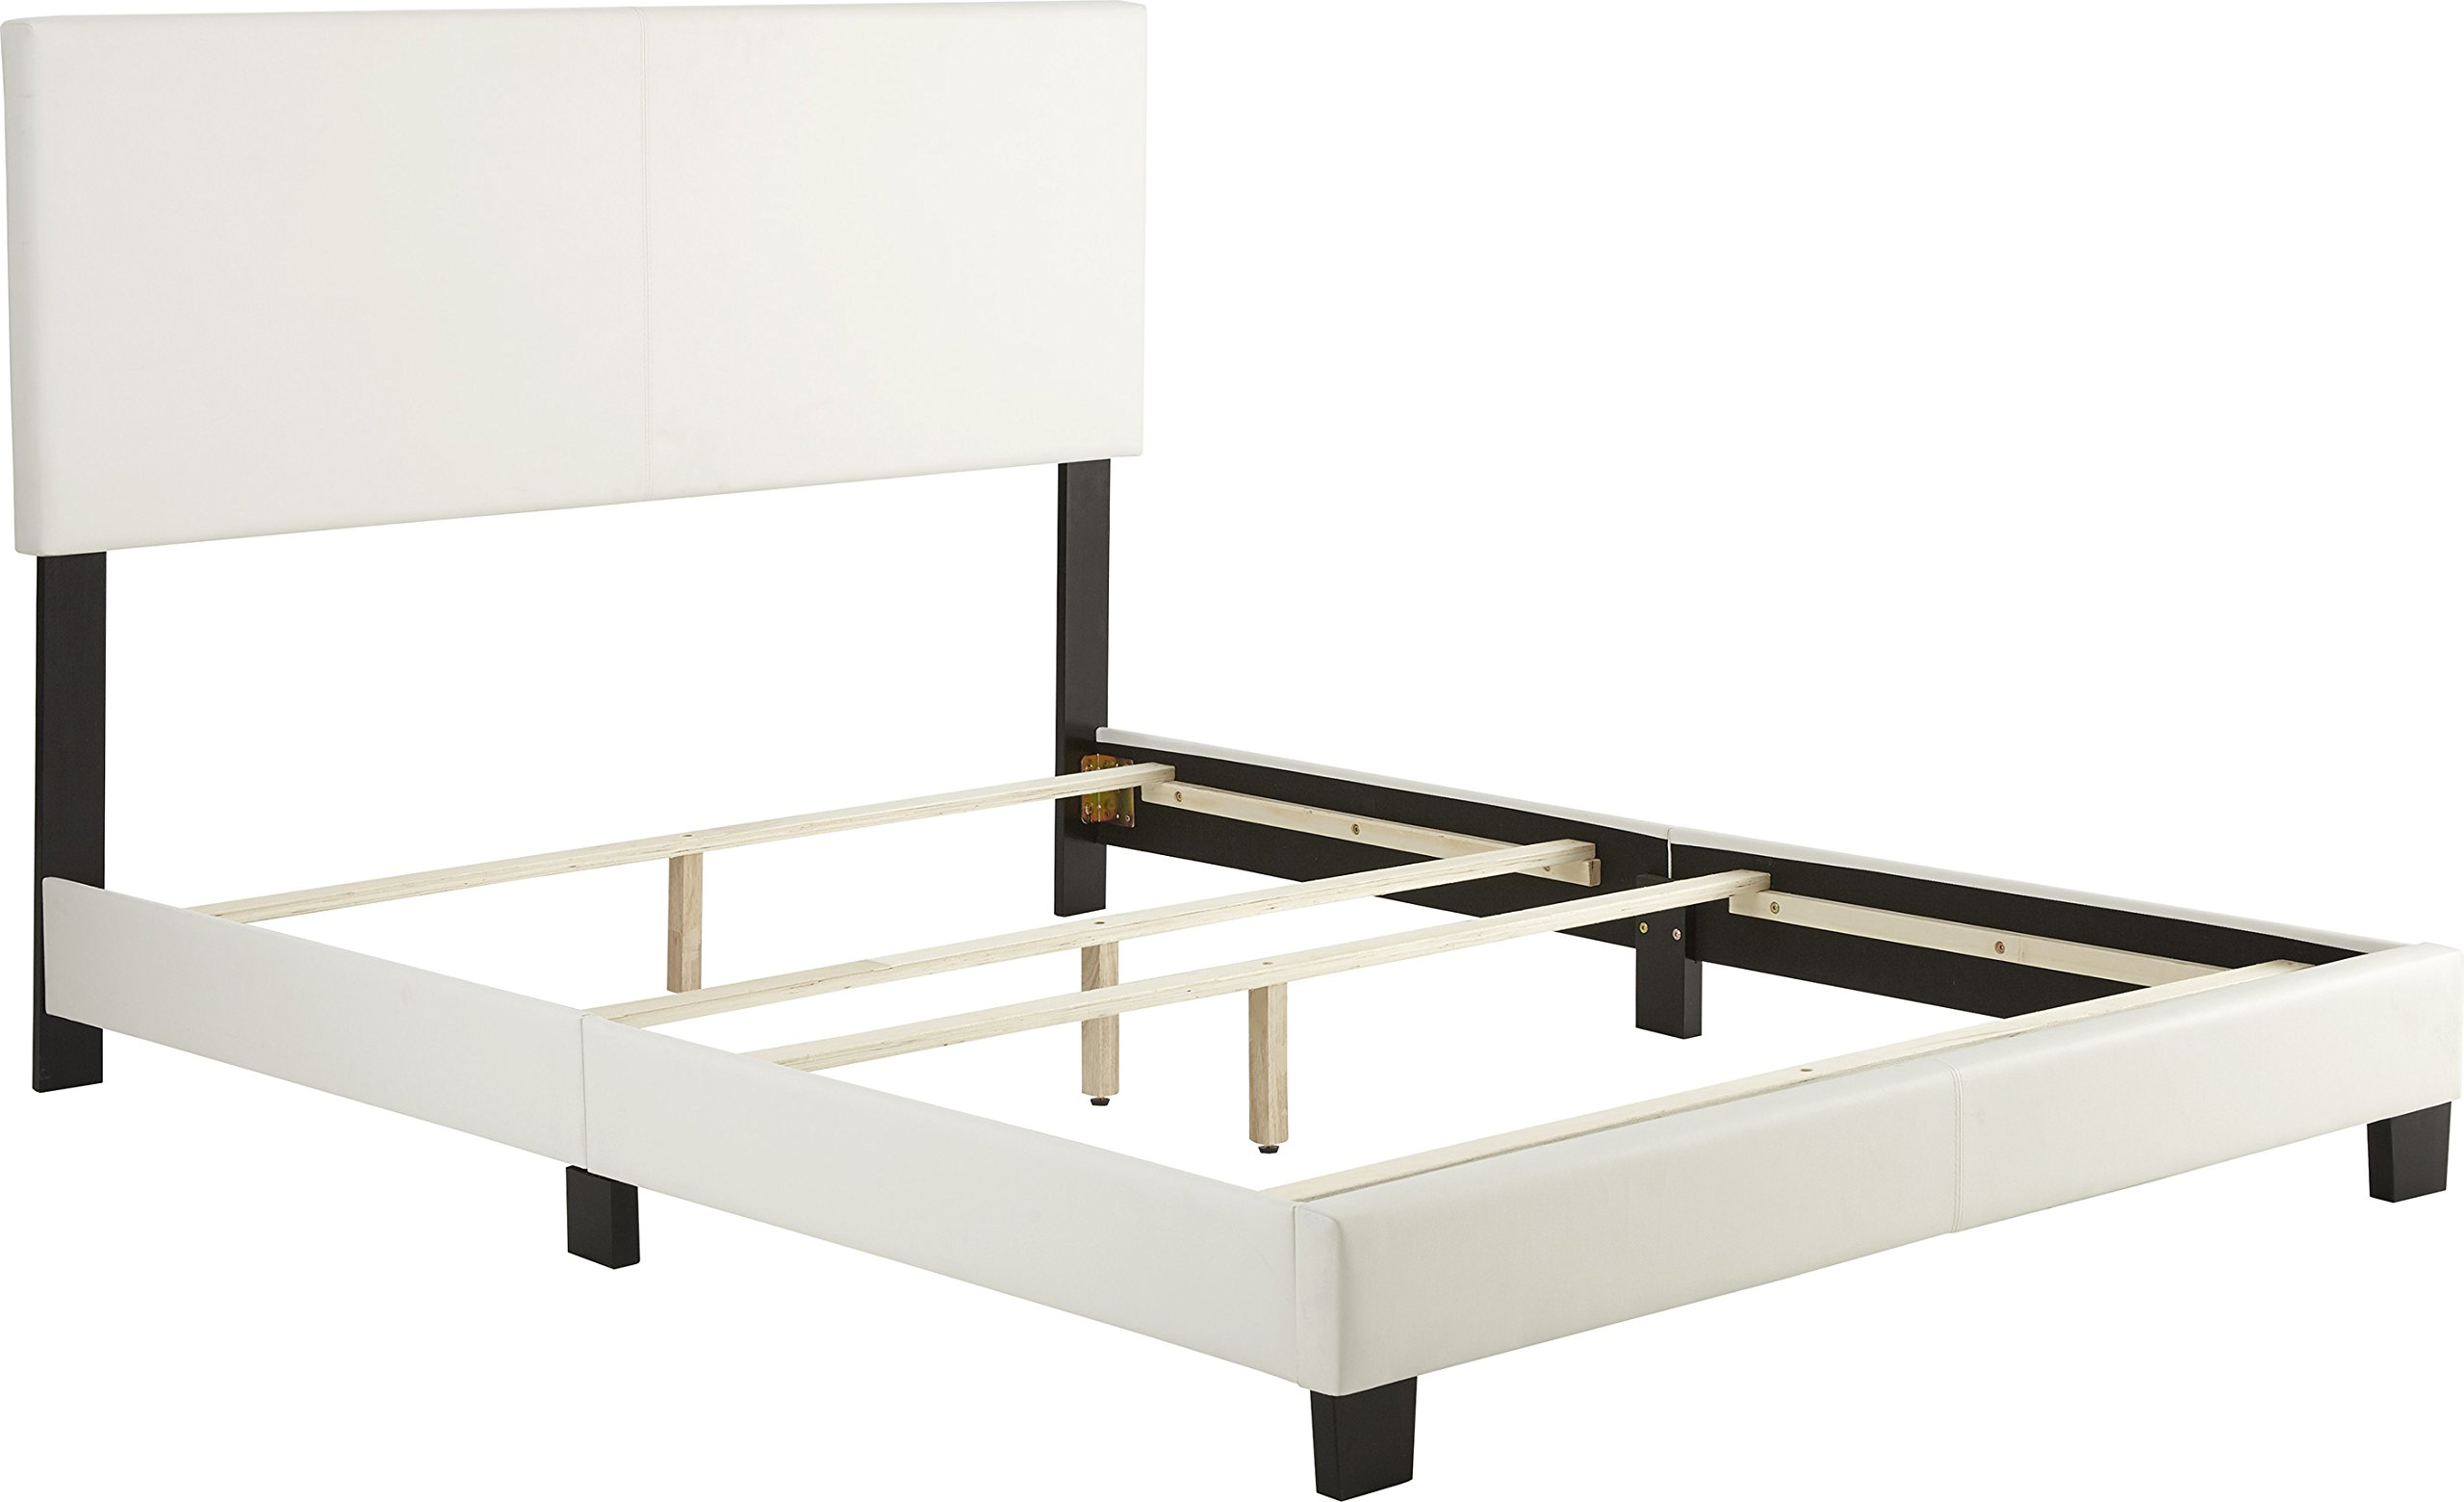 Flex Form Montana Upholstered Platform Bed Frame with Headboard: Faux Leather, White, Queen